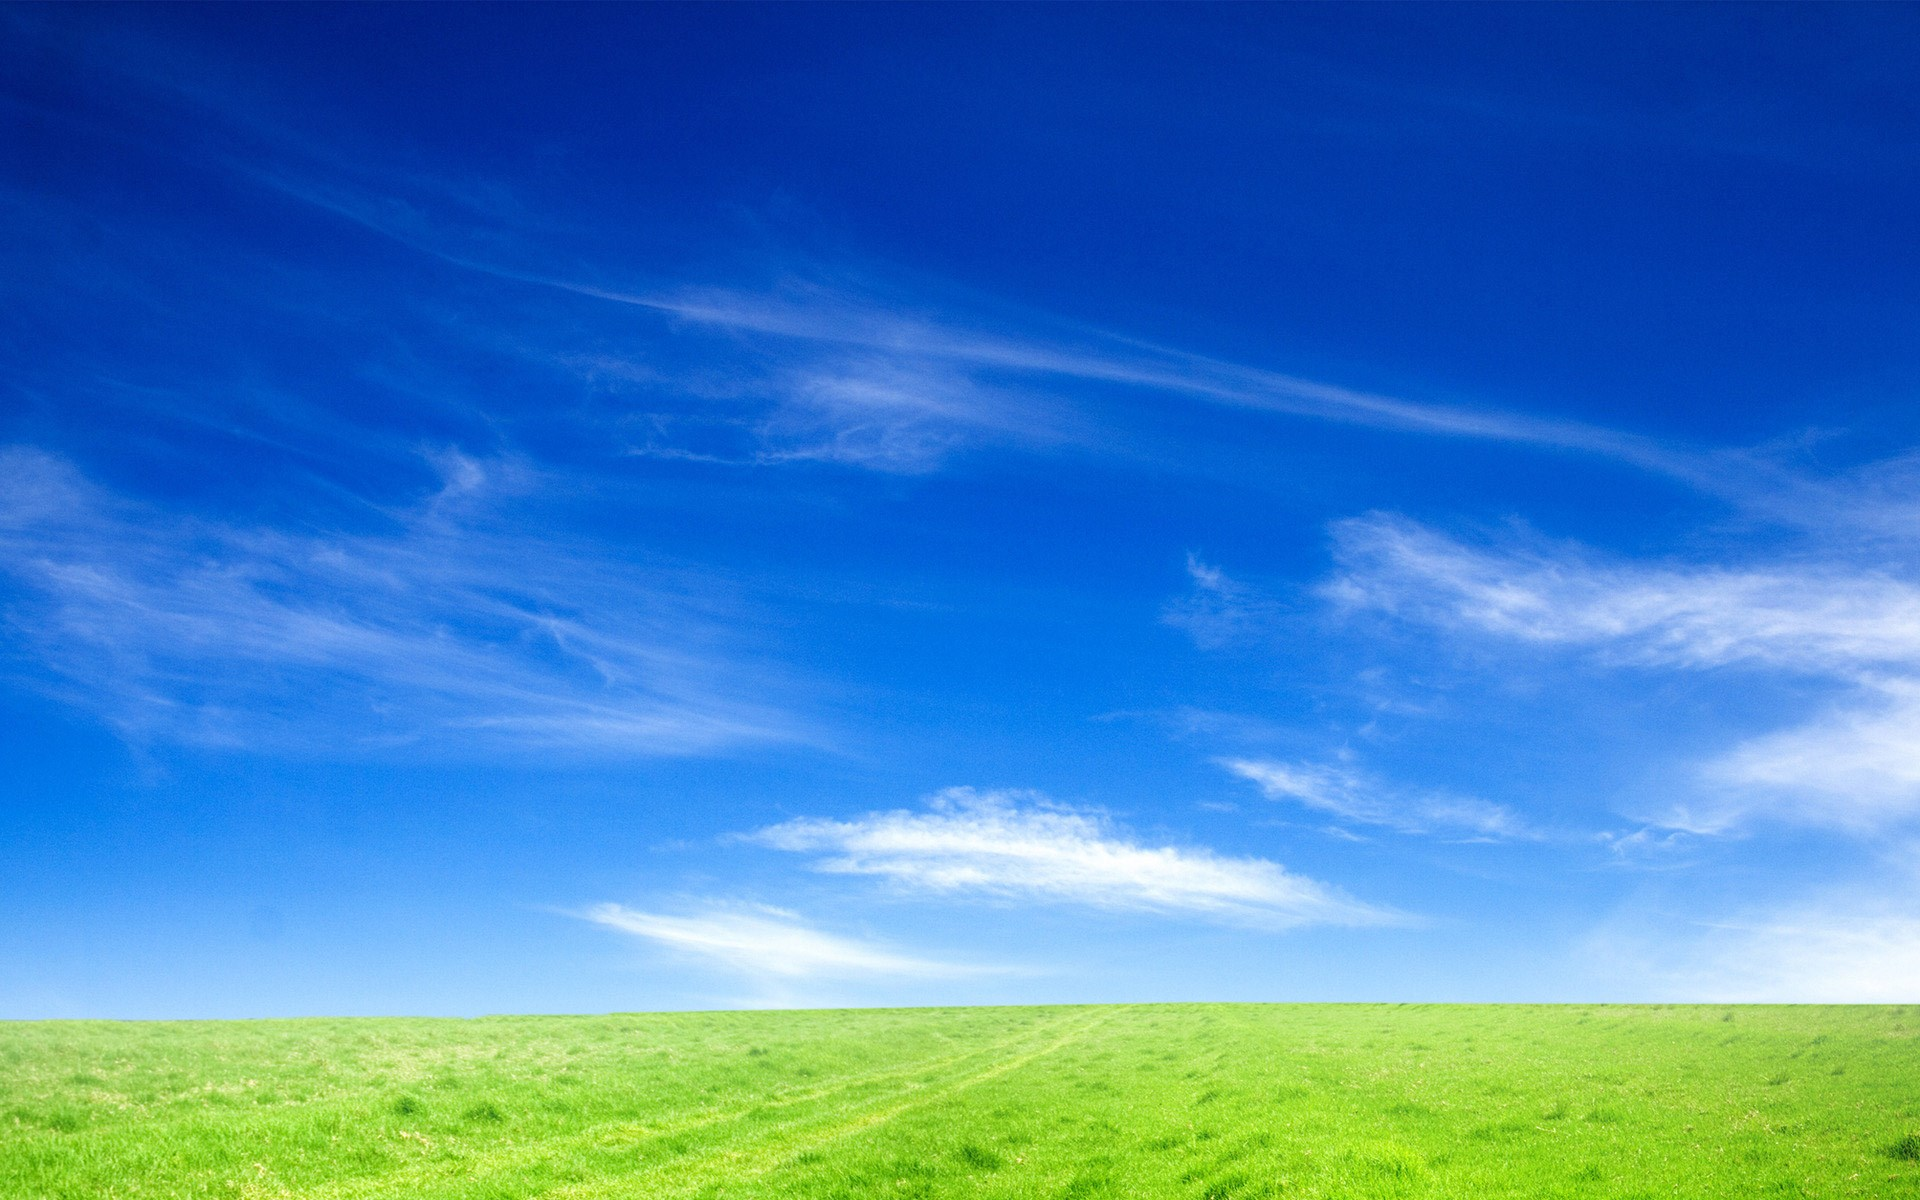 Best 3d Wallpapers For Phone Blue Sky And Green Grass Wallpaper 1920x1200